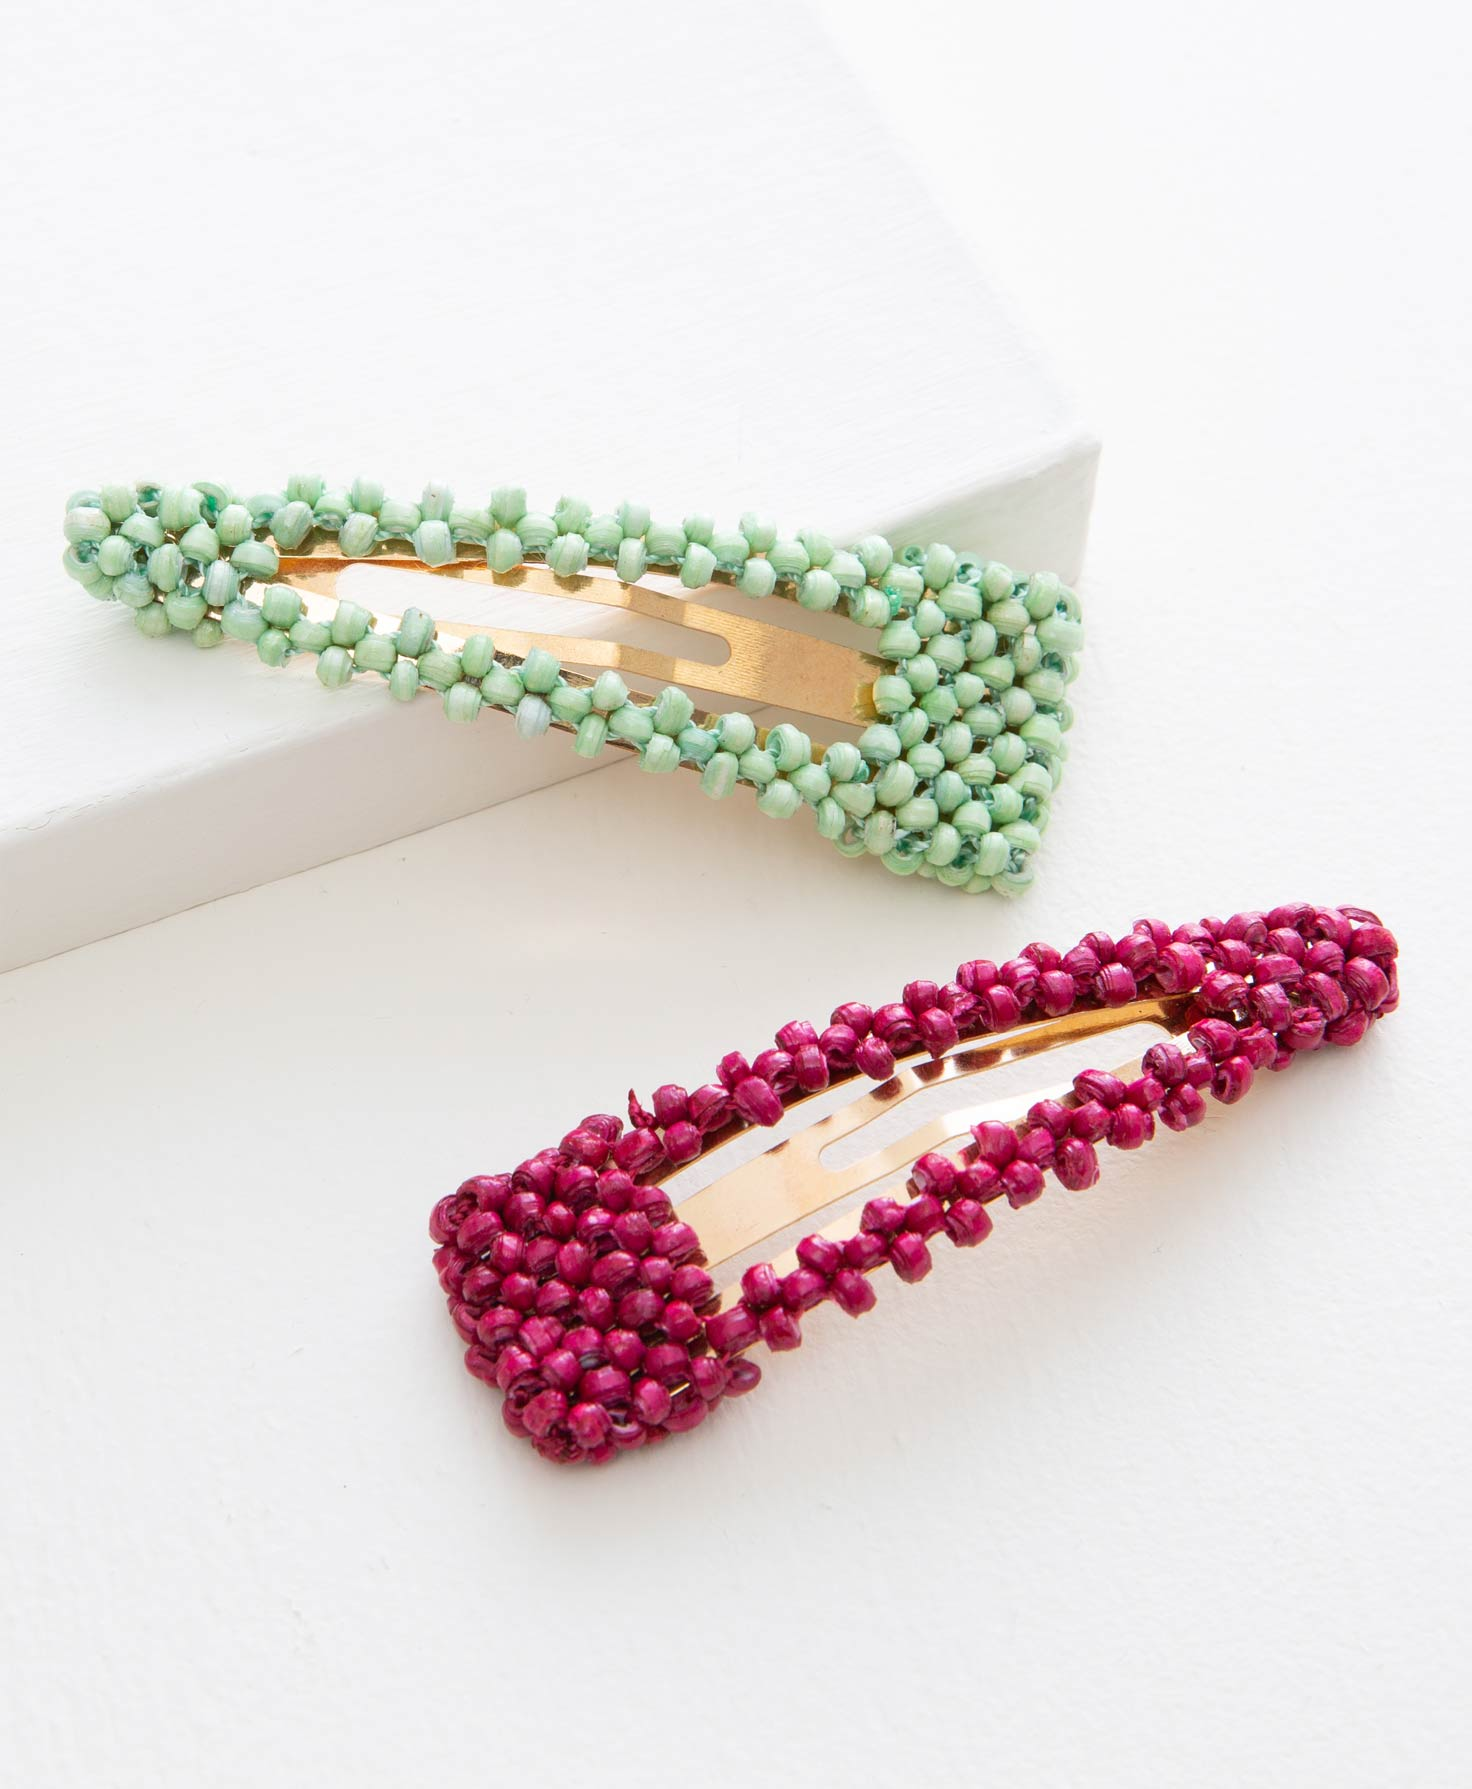 The two clips included in the Adorned Hair Clips Set lay flat on a white surface. This set features two large brass snap clips covered in tiny, hand-rolled paper beads. One clip is mint green, and the other is raspberry pink.